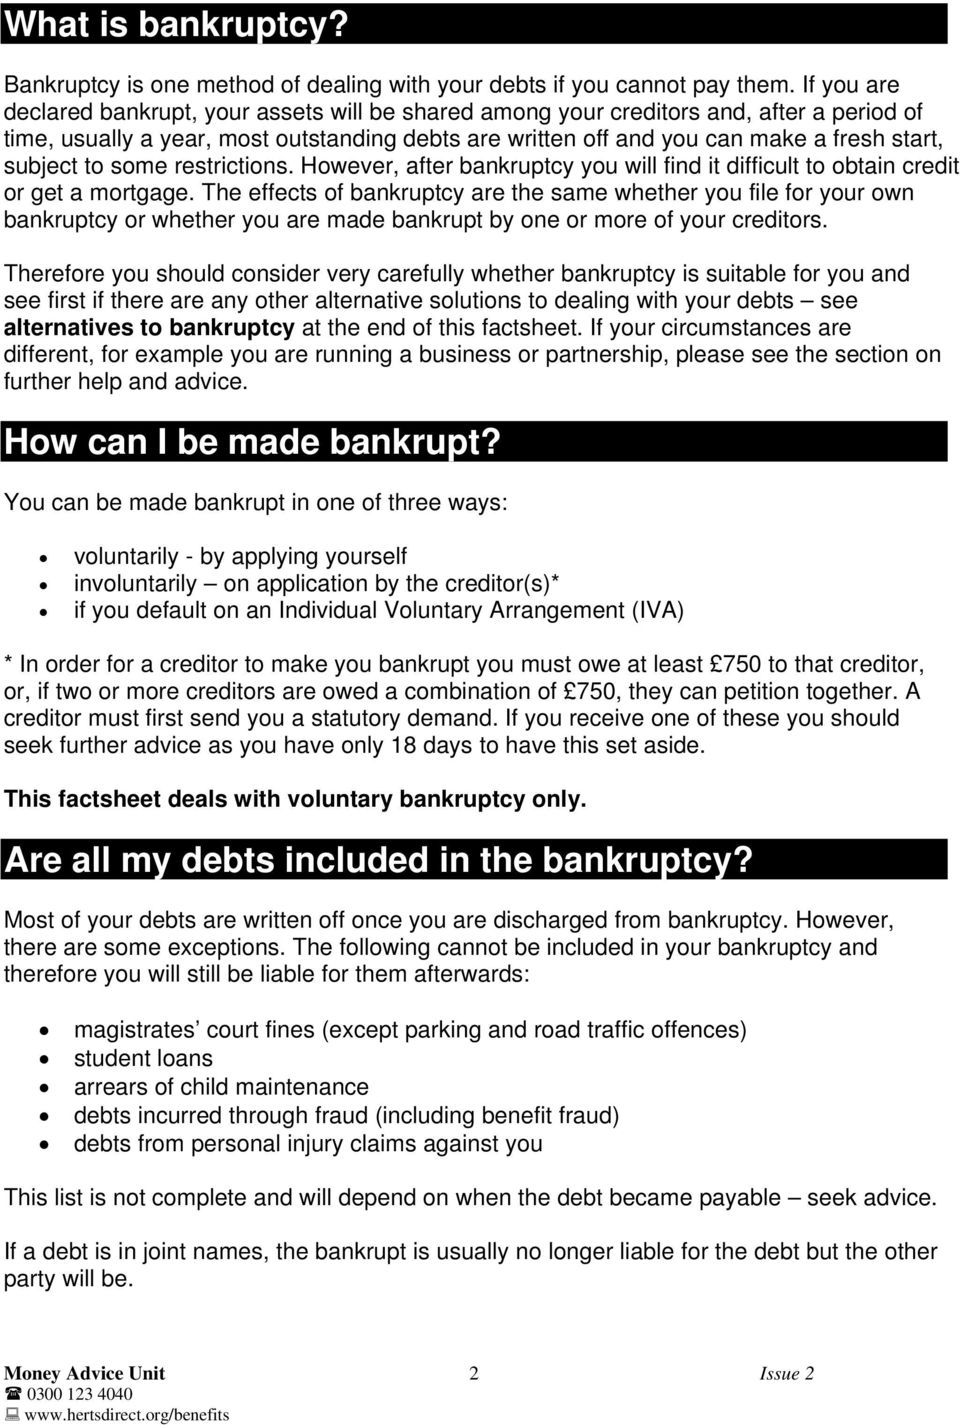 subject to some restrictions. However, after bankruptcy you will find it difficult to obtain credit or get a mortgage.